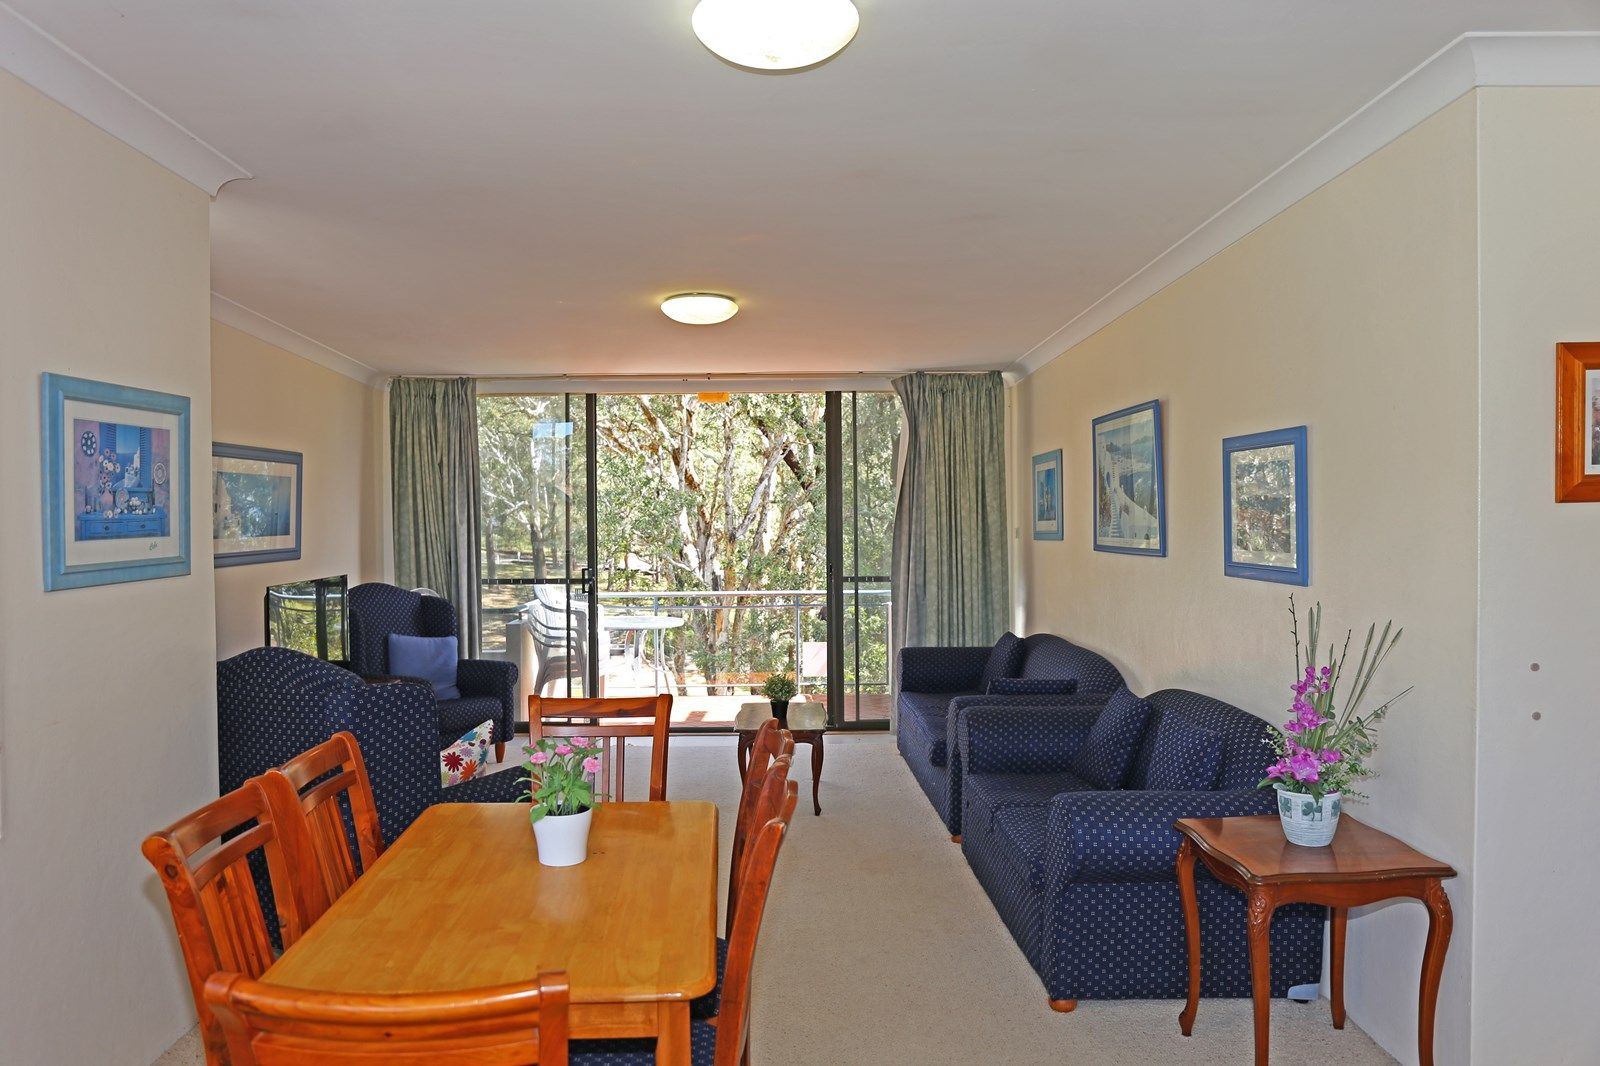 13/17 Mistral Close, Nelson Bay NSW 2315, Image 1